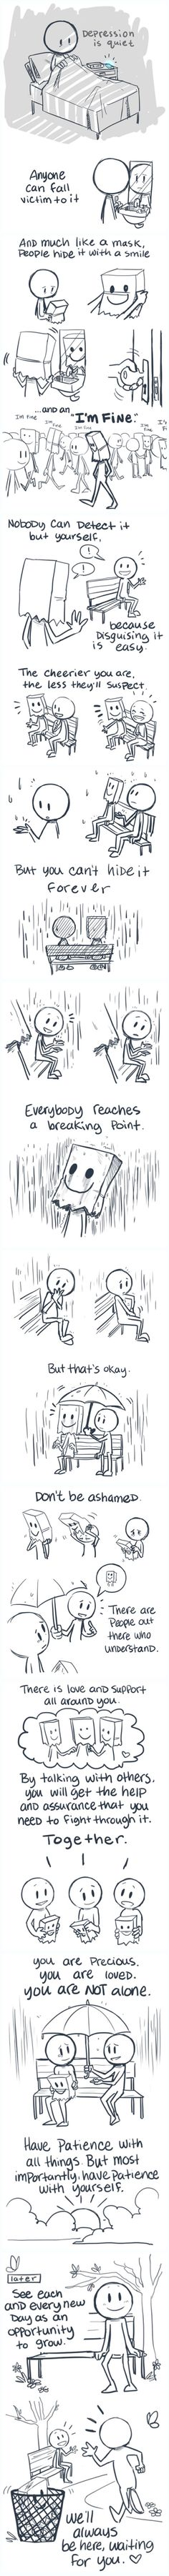 These comics perfectly capture what dealing with depression is like (By Colleen: http://solar-citrus.tumblr.com/post/98583201090/you-would-be-surprised-with-how-many-people-in)